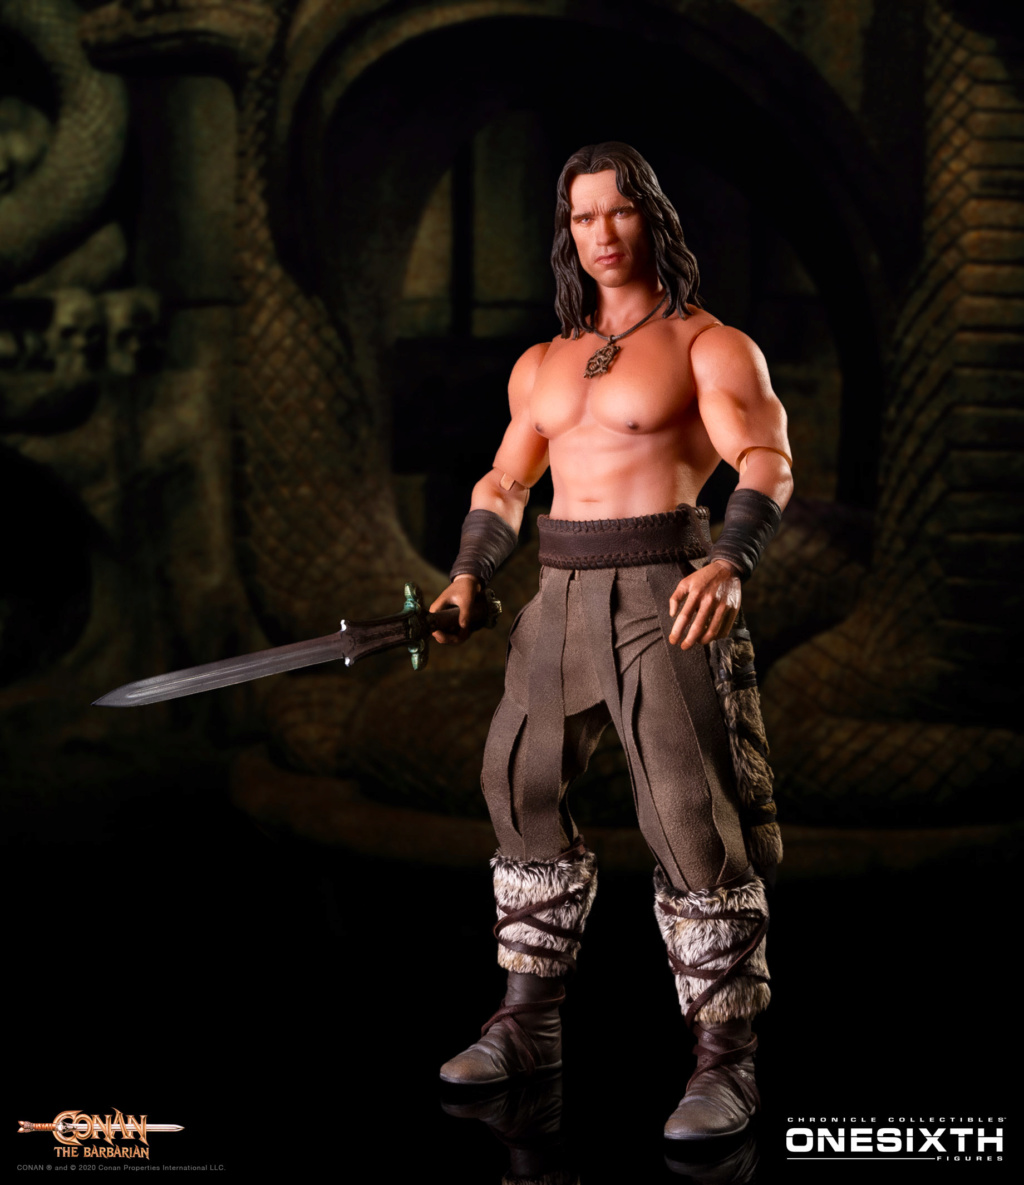 NEW PRODUCT: Chronicle Collectibles: OneSixth Conan the Barbarian Figure Chroni12